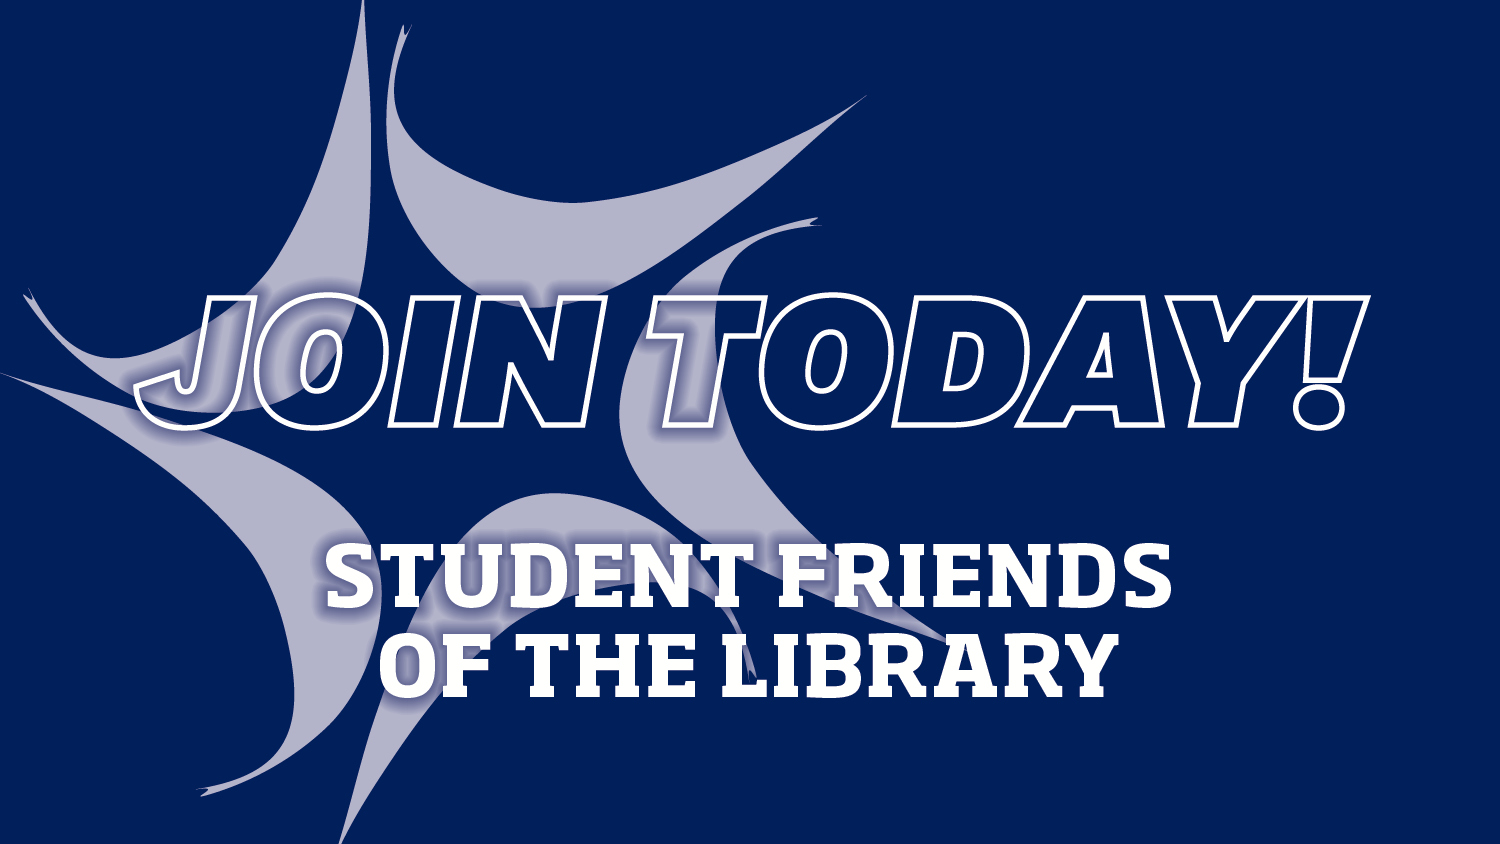 Student Friends of the Library